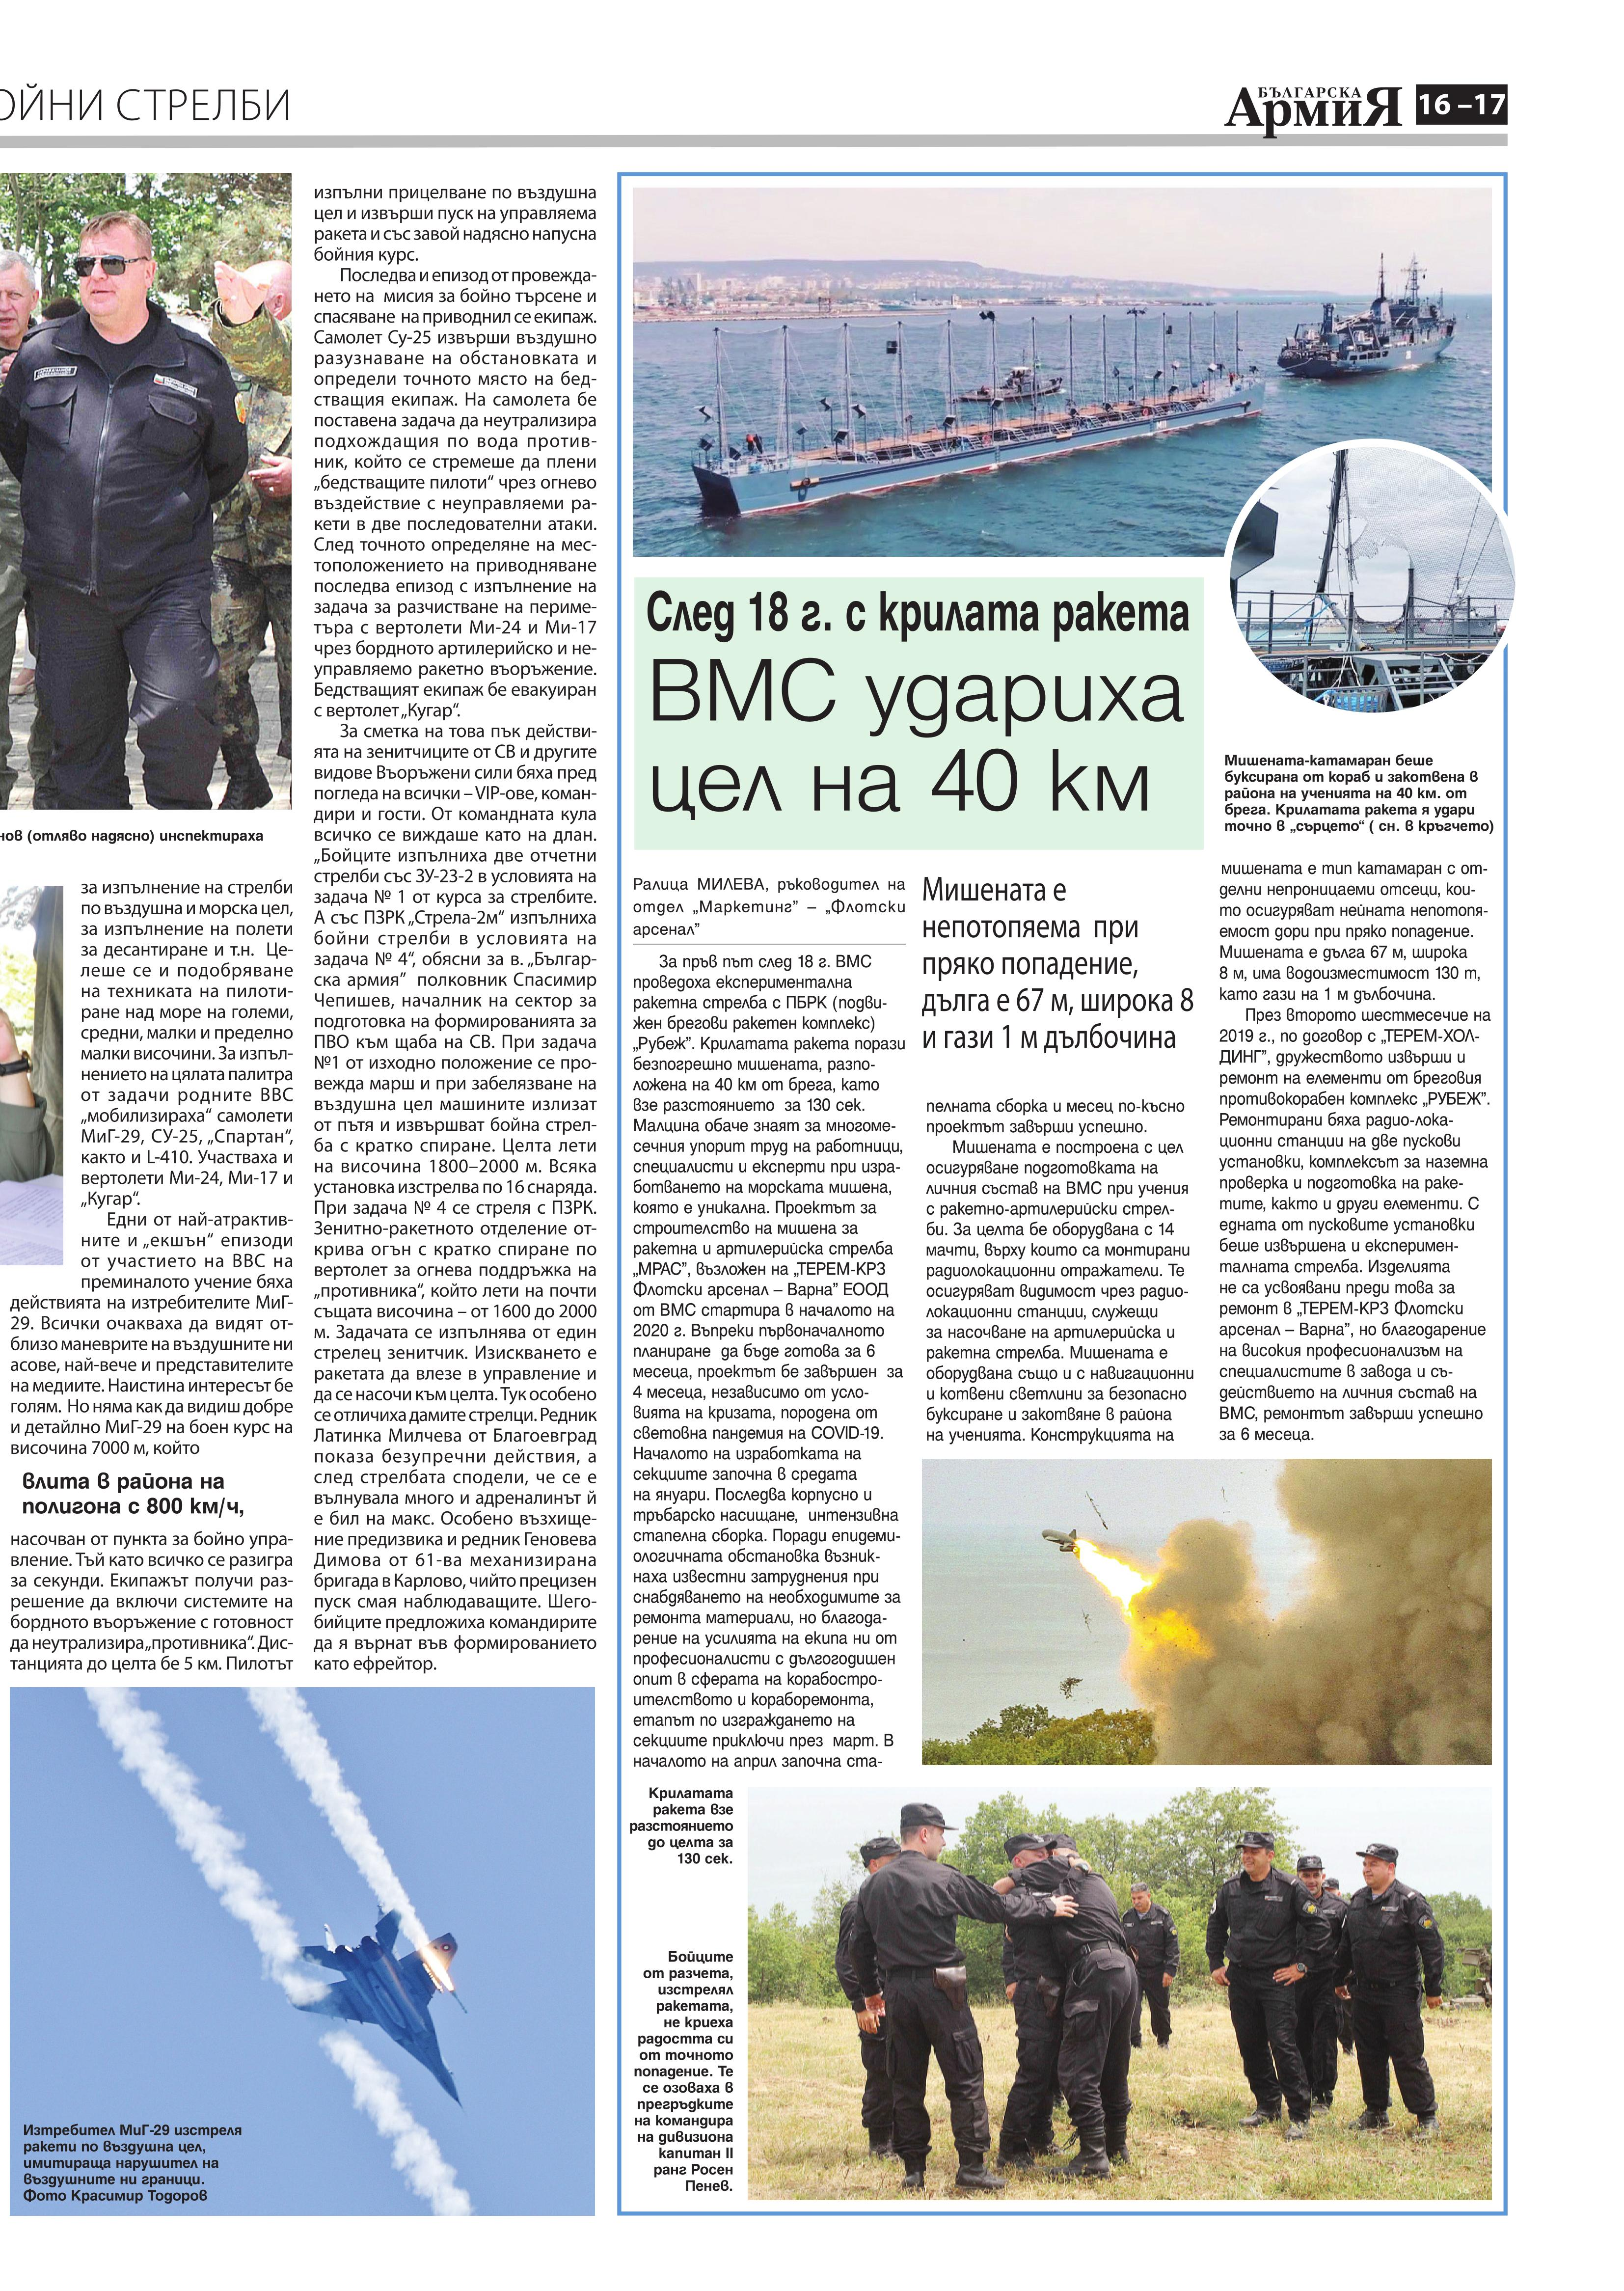 https://armymedia.bg/wp-content/uploads/2015/06/17.page1_-144.jpg